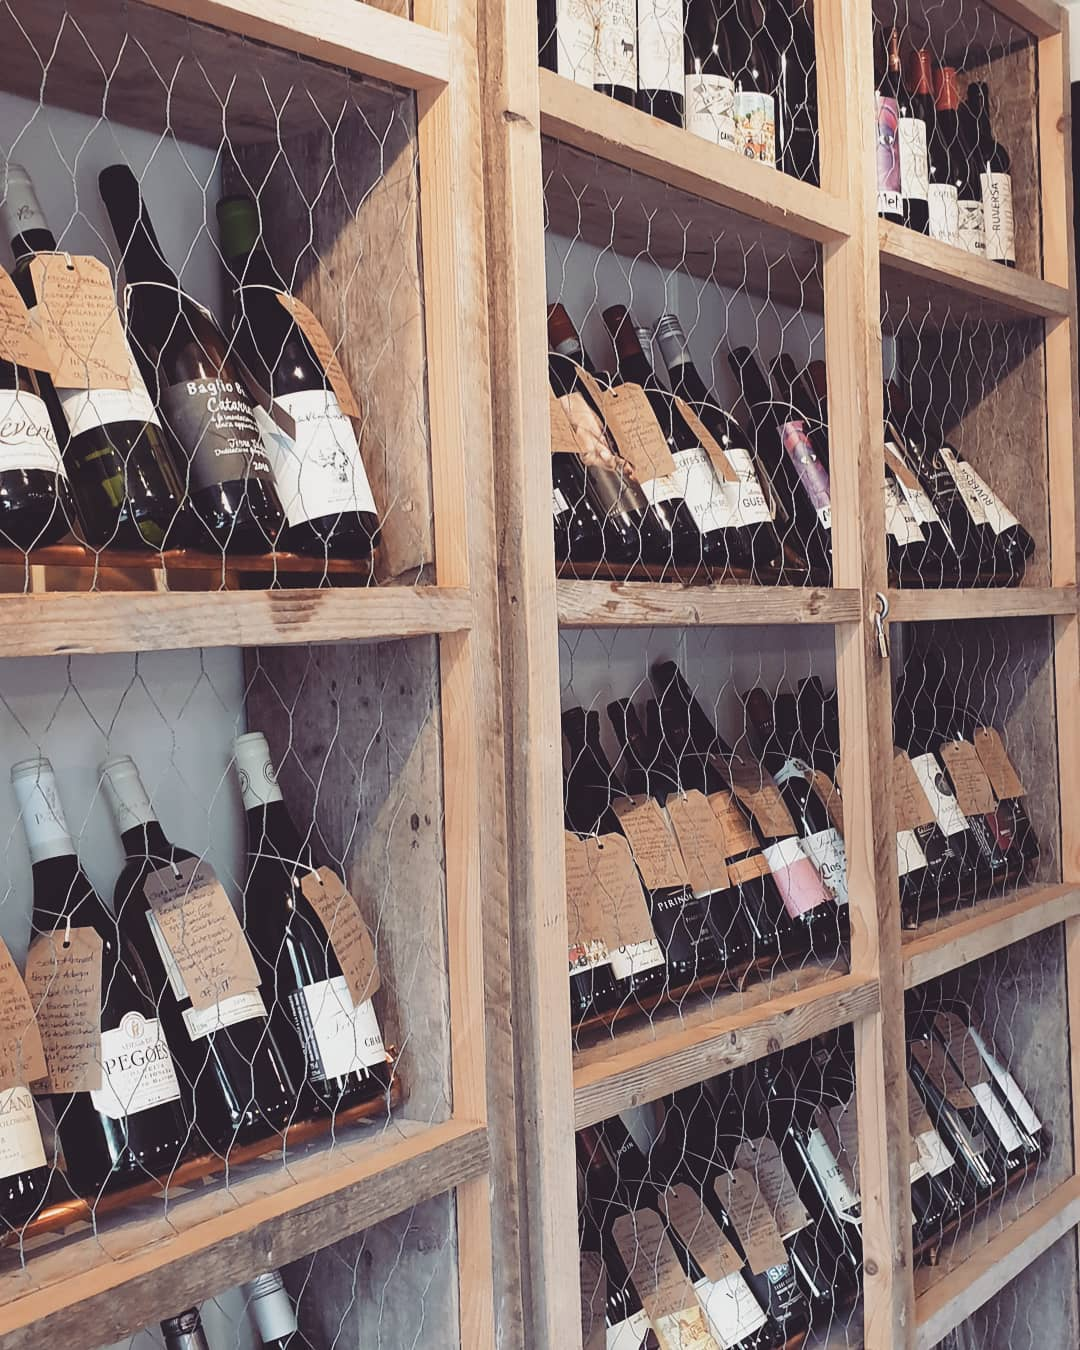 We're running wine around Bath today for customers – call us at Chapel Row on 01225 423417 to get your order in and we'll get it to you later today – free delivery in Bath @keepingbathafloat @independent.bath @thepigguide #corkagebath #wine